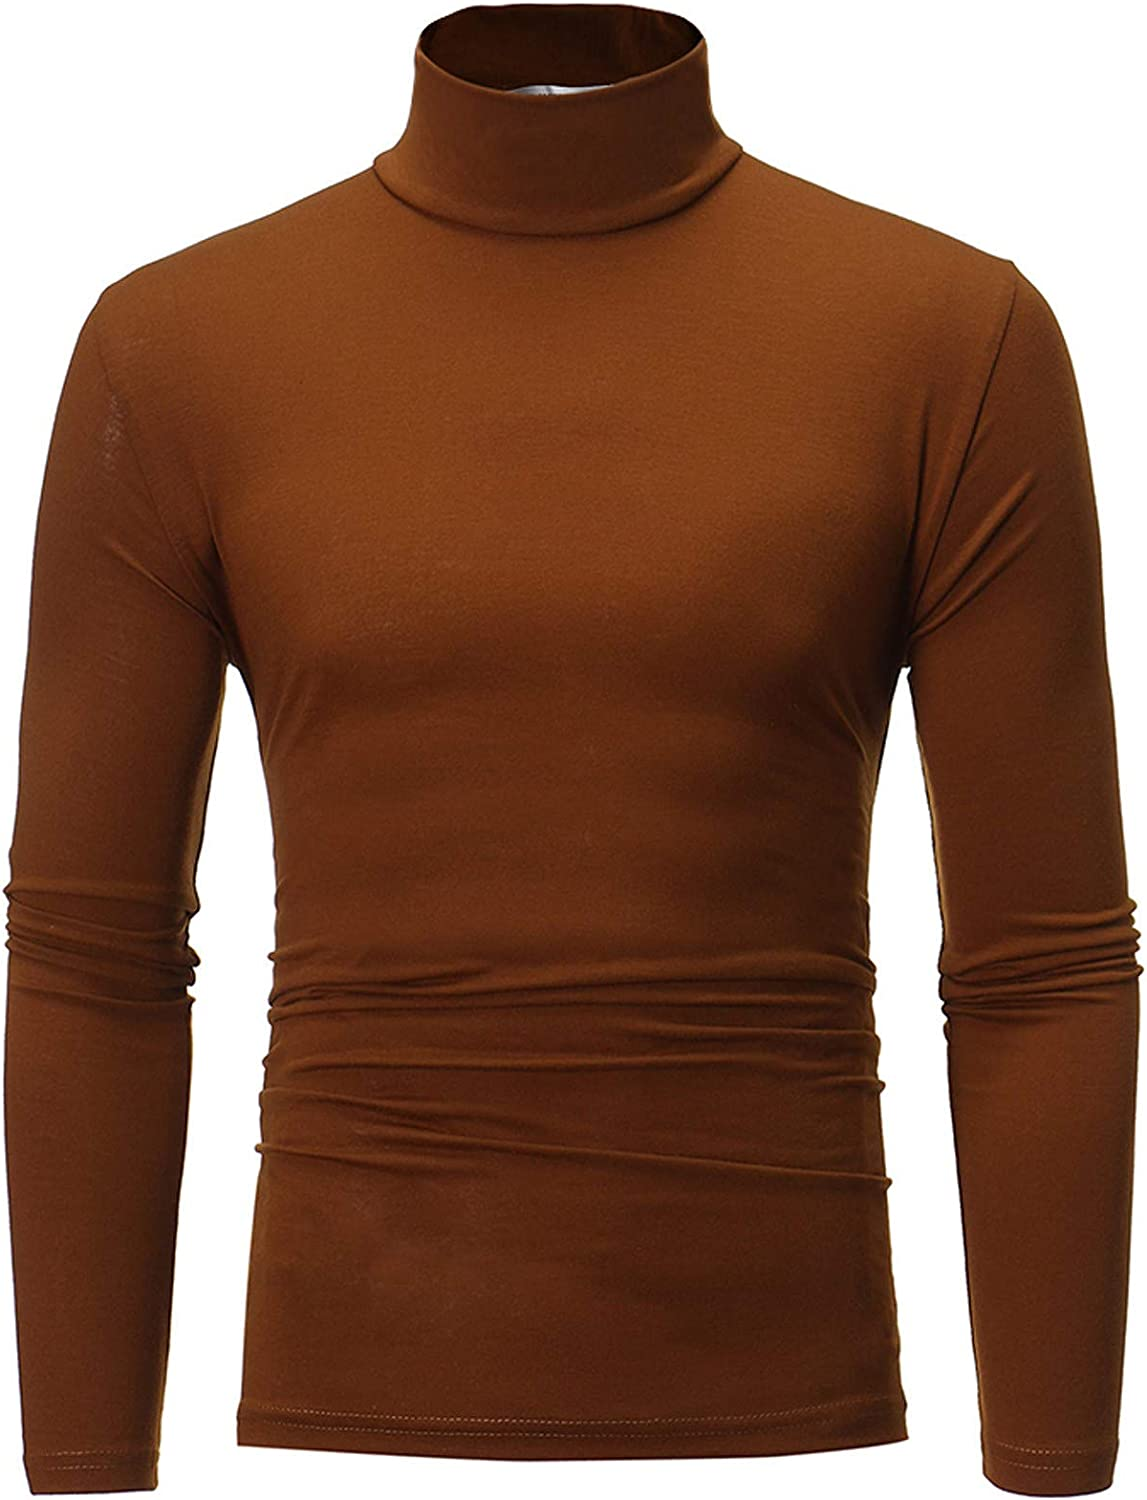 Sexyp-tops Men Clothes,Men's Turtleneck Long Sleeve Solid Colour Stretch Slim Fit Bottoming Top Blouse Undershirts